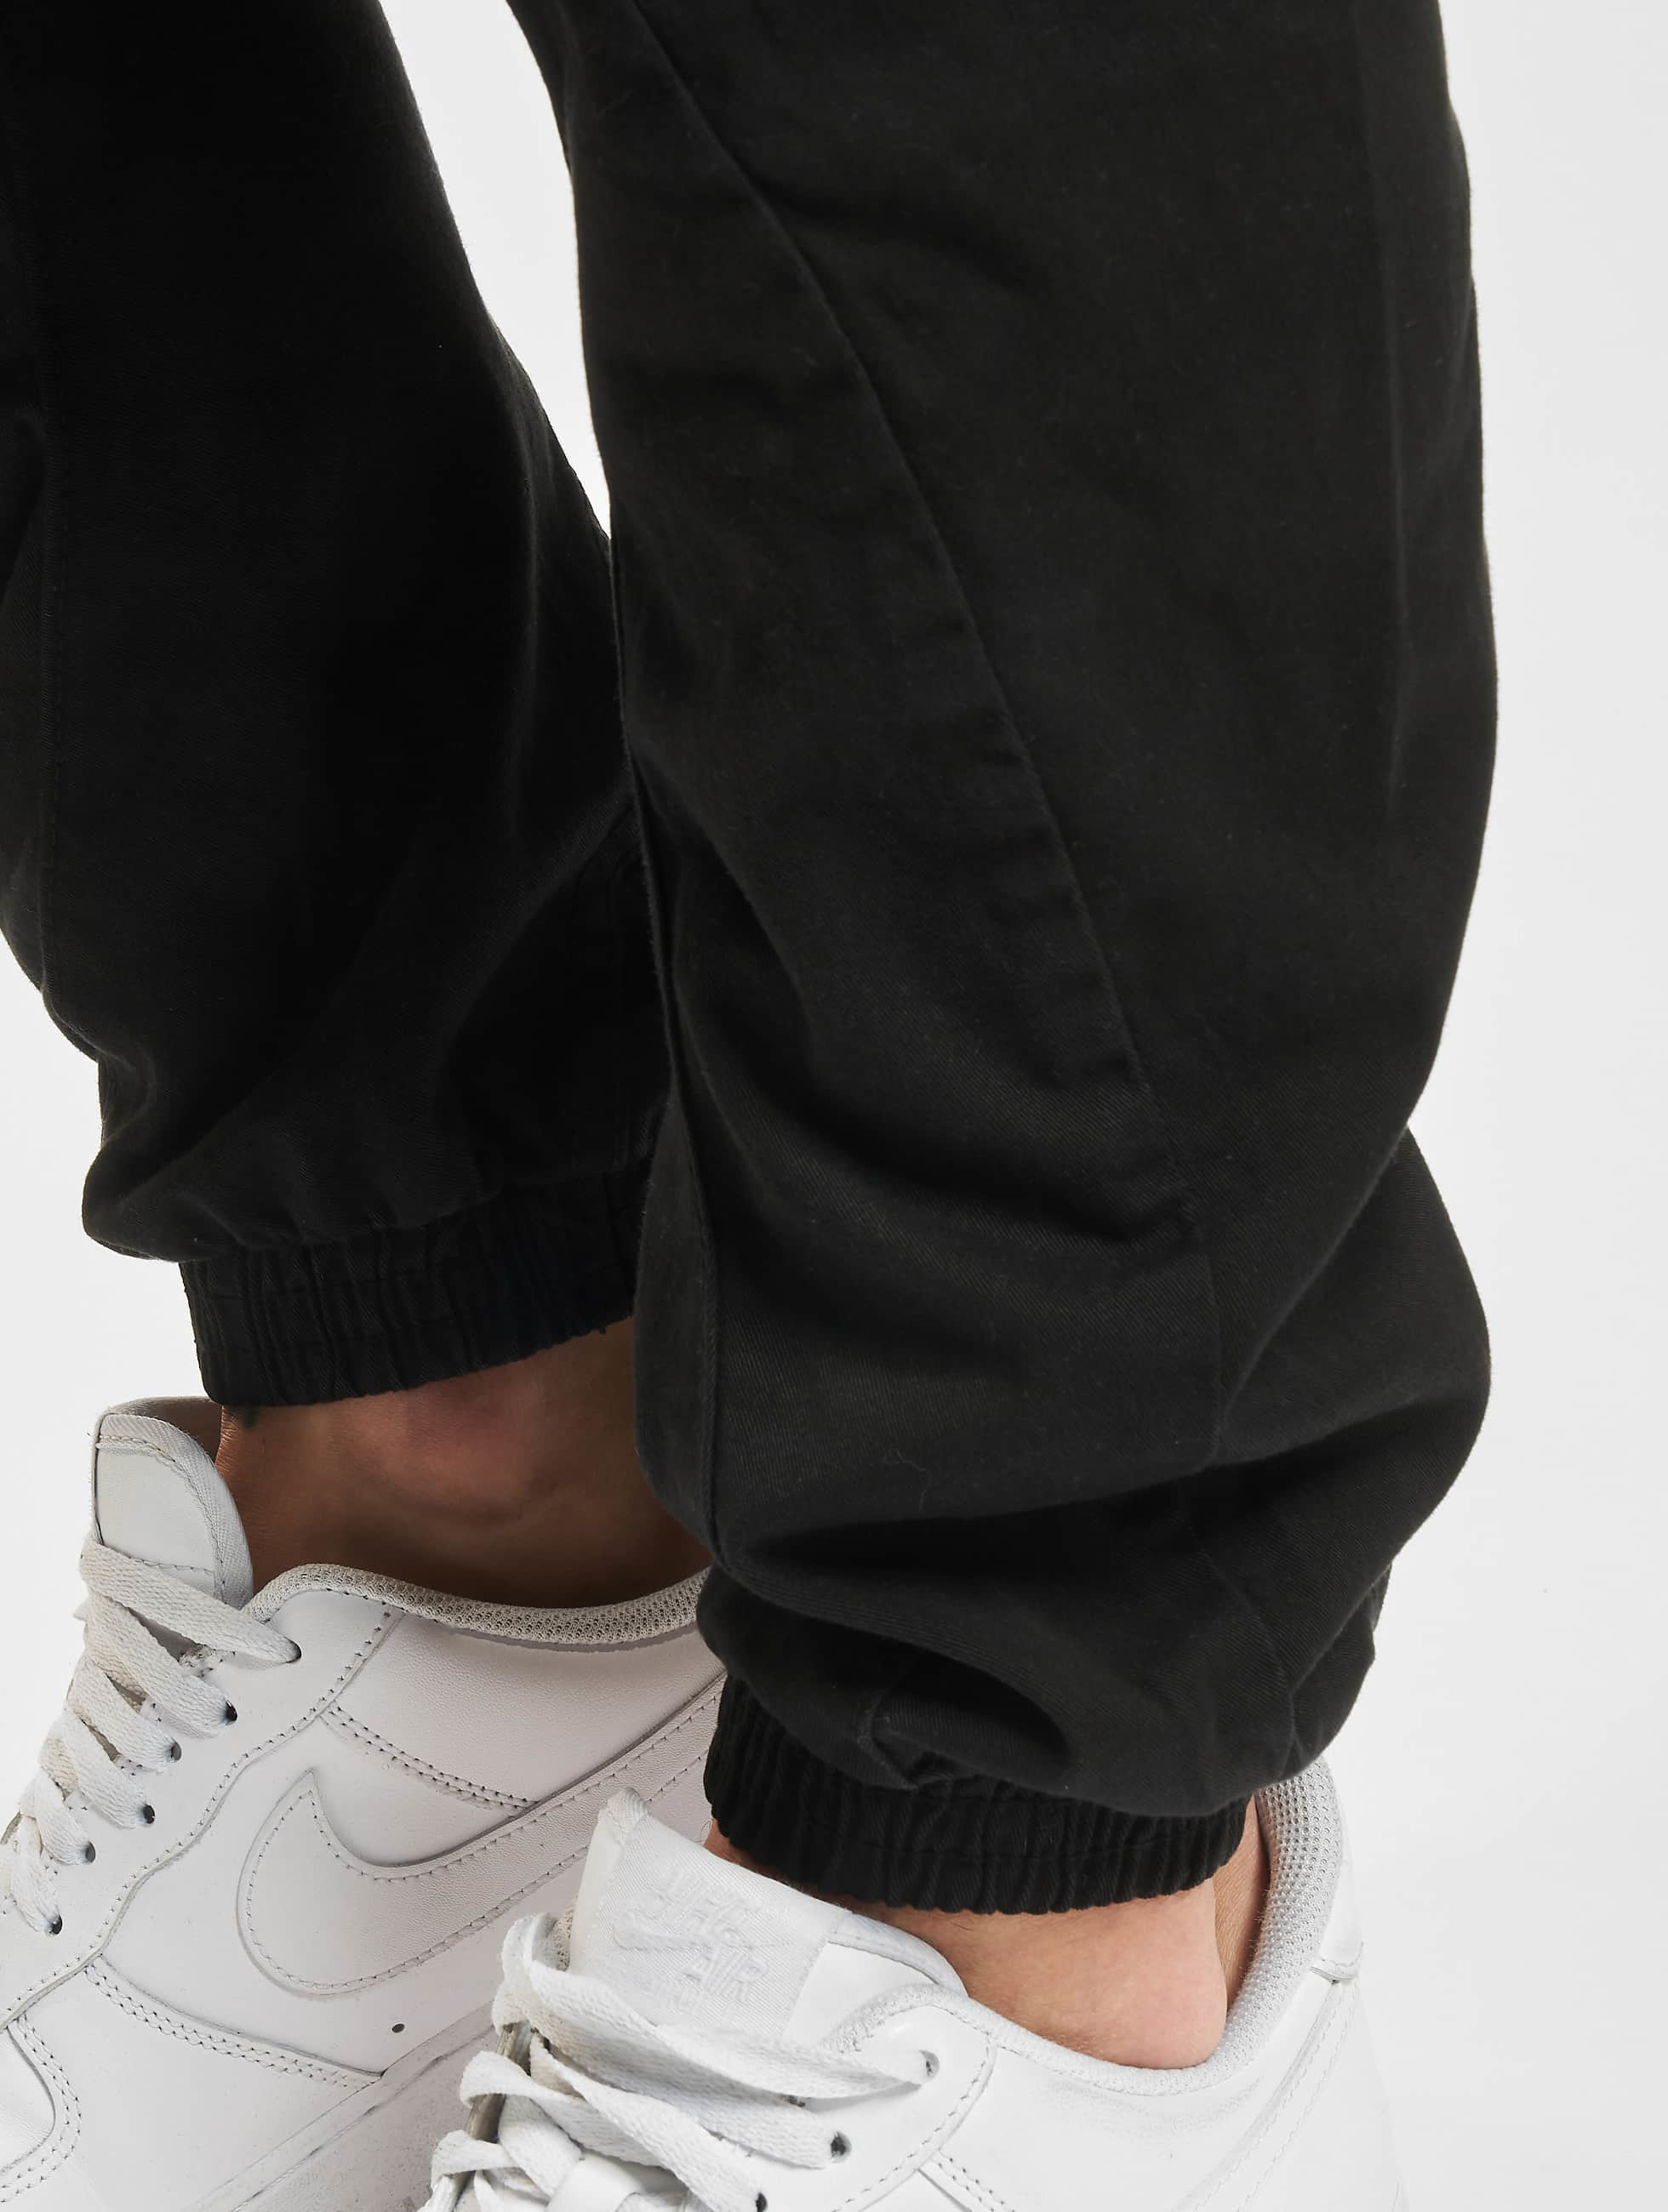 Urban Classics Spodnie do joggingu Stretch czarny